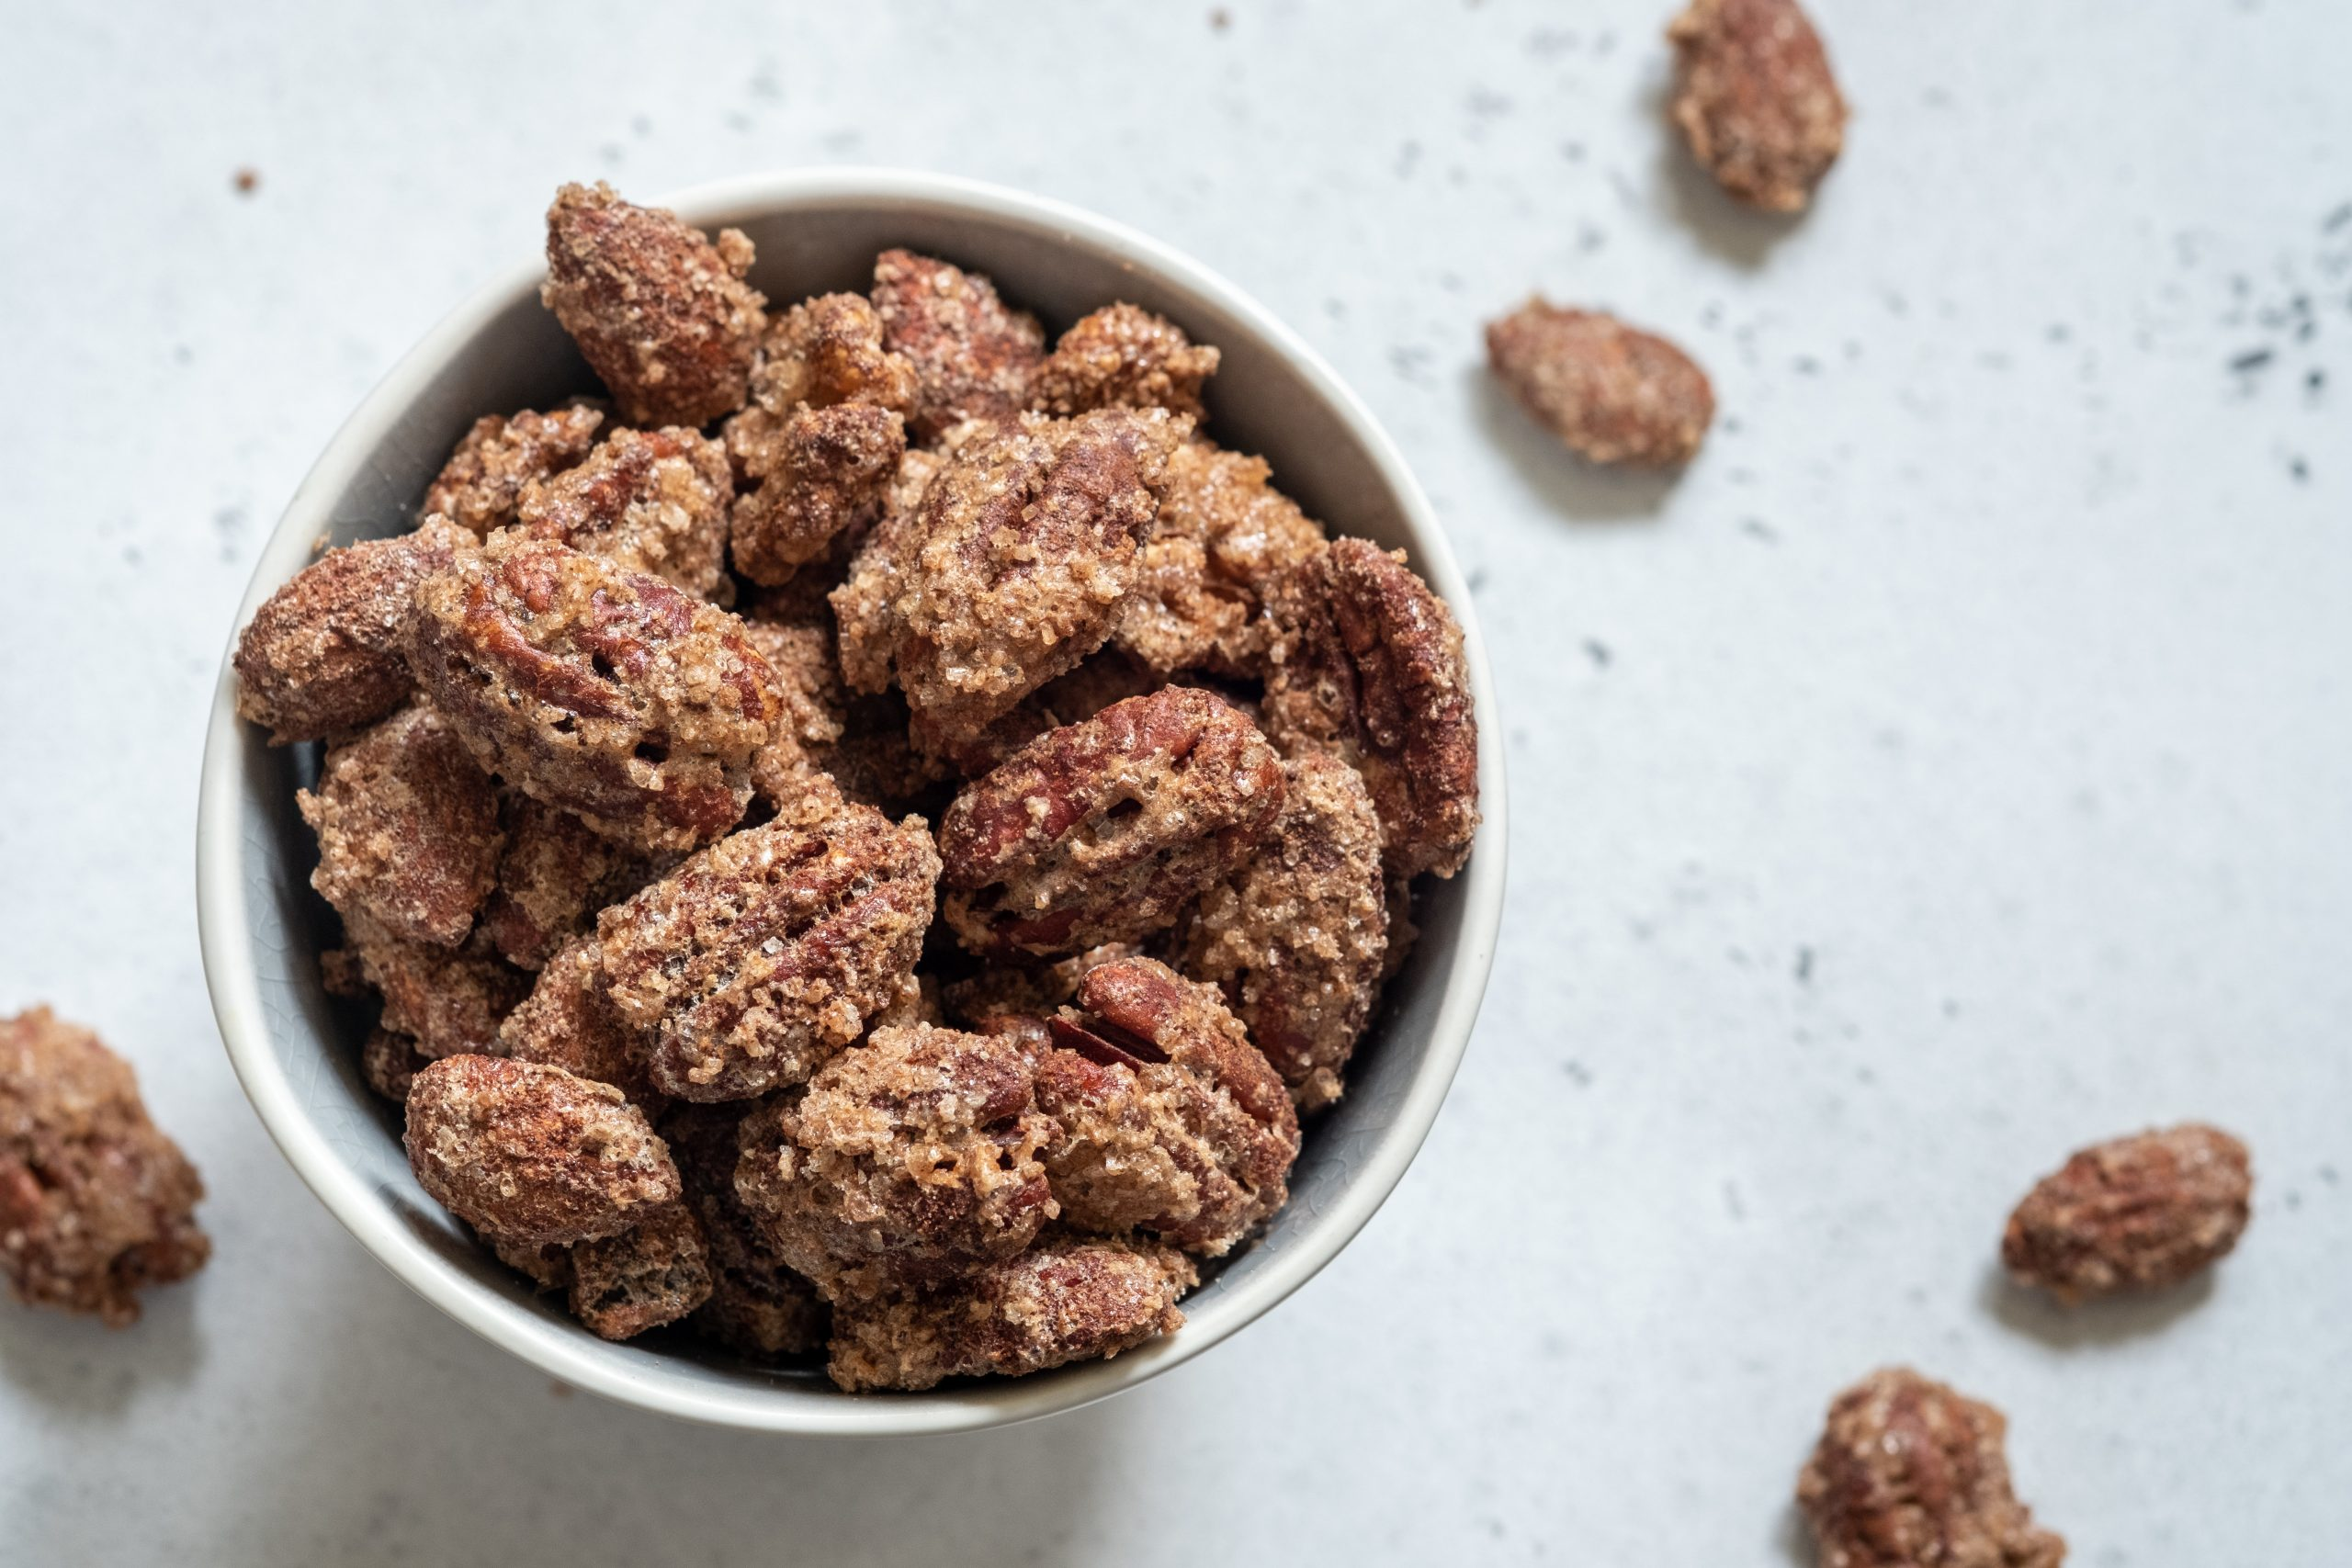 SUGAR FREE CANDIED ALMONDS WALNUTS AND PECANS